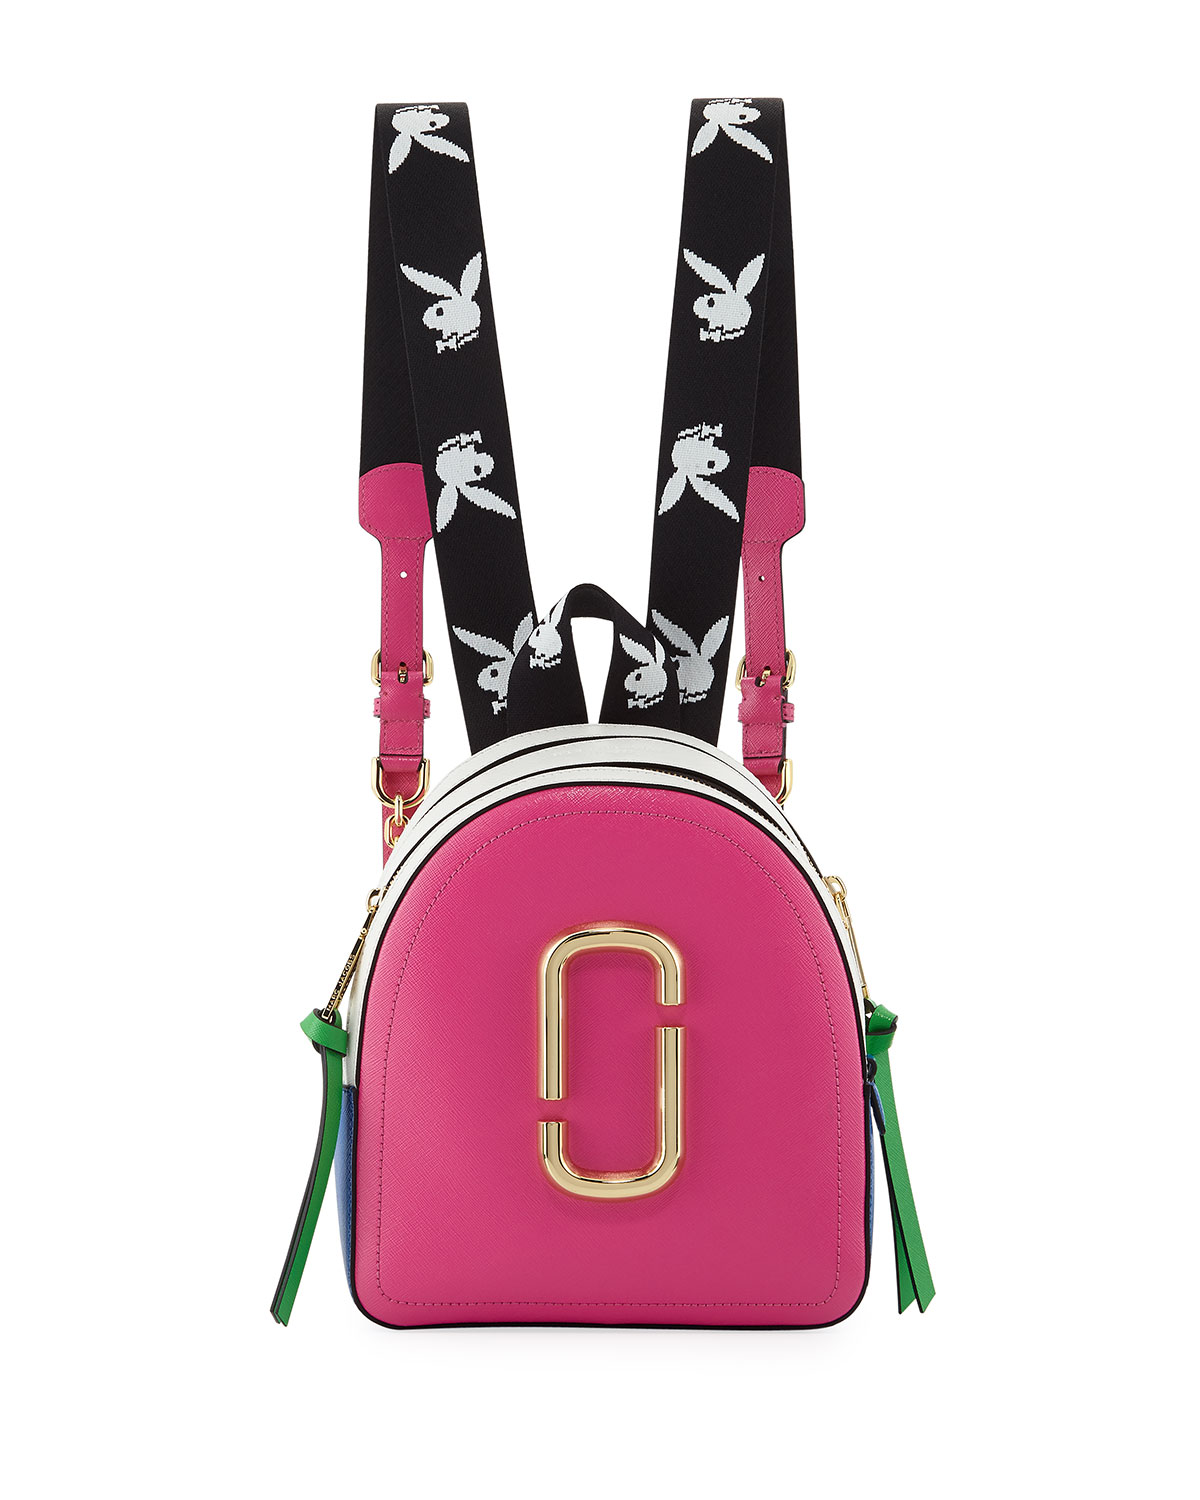 c67d857f0dd Marc Jacobs Playboy Bunny Colorblock Leather Backpack | Neiman Marcus